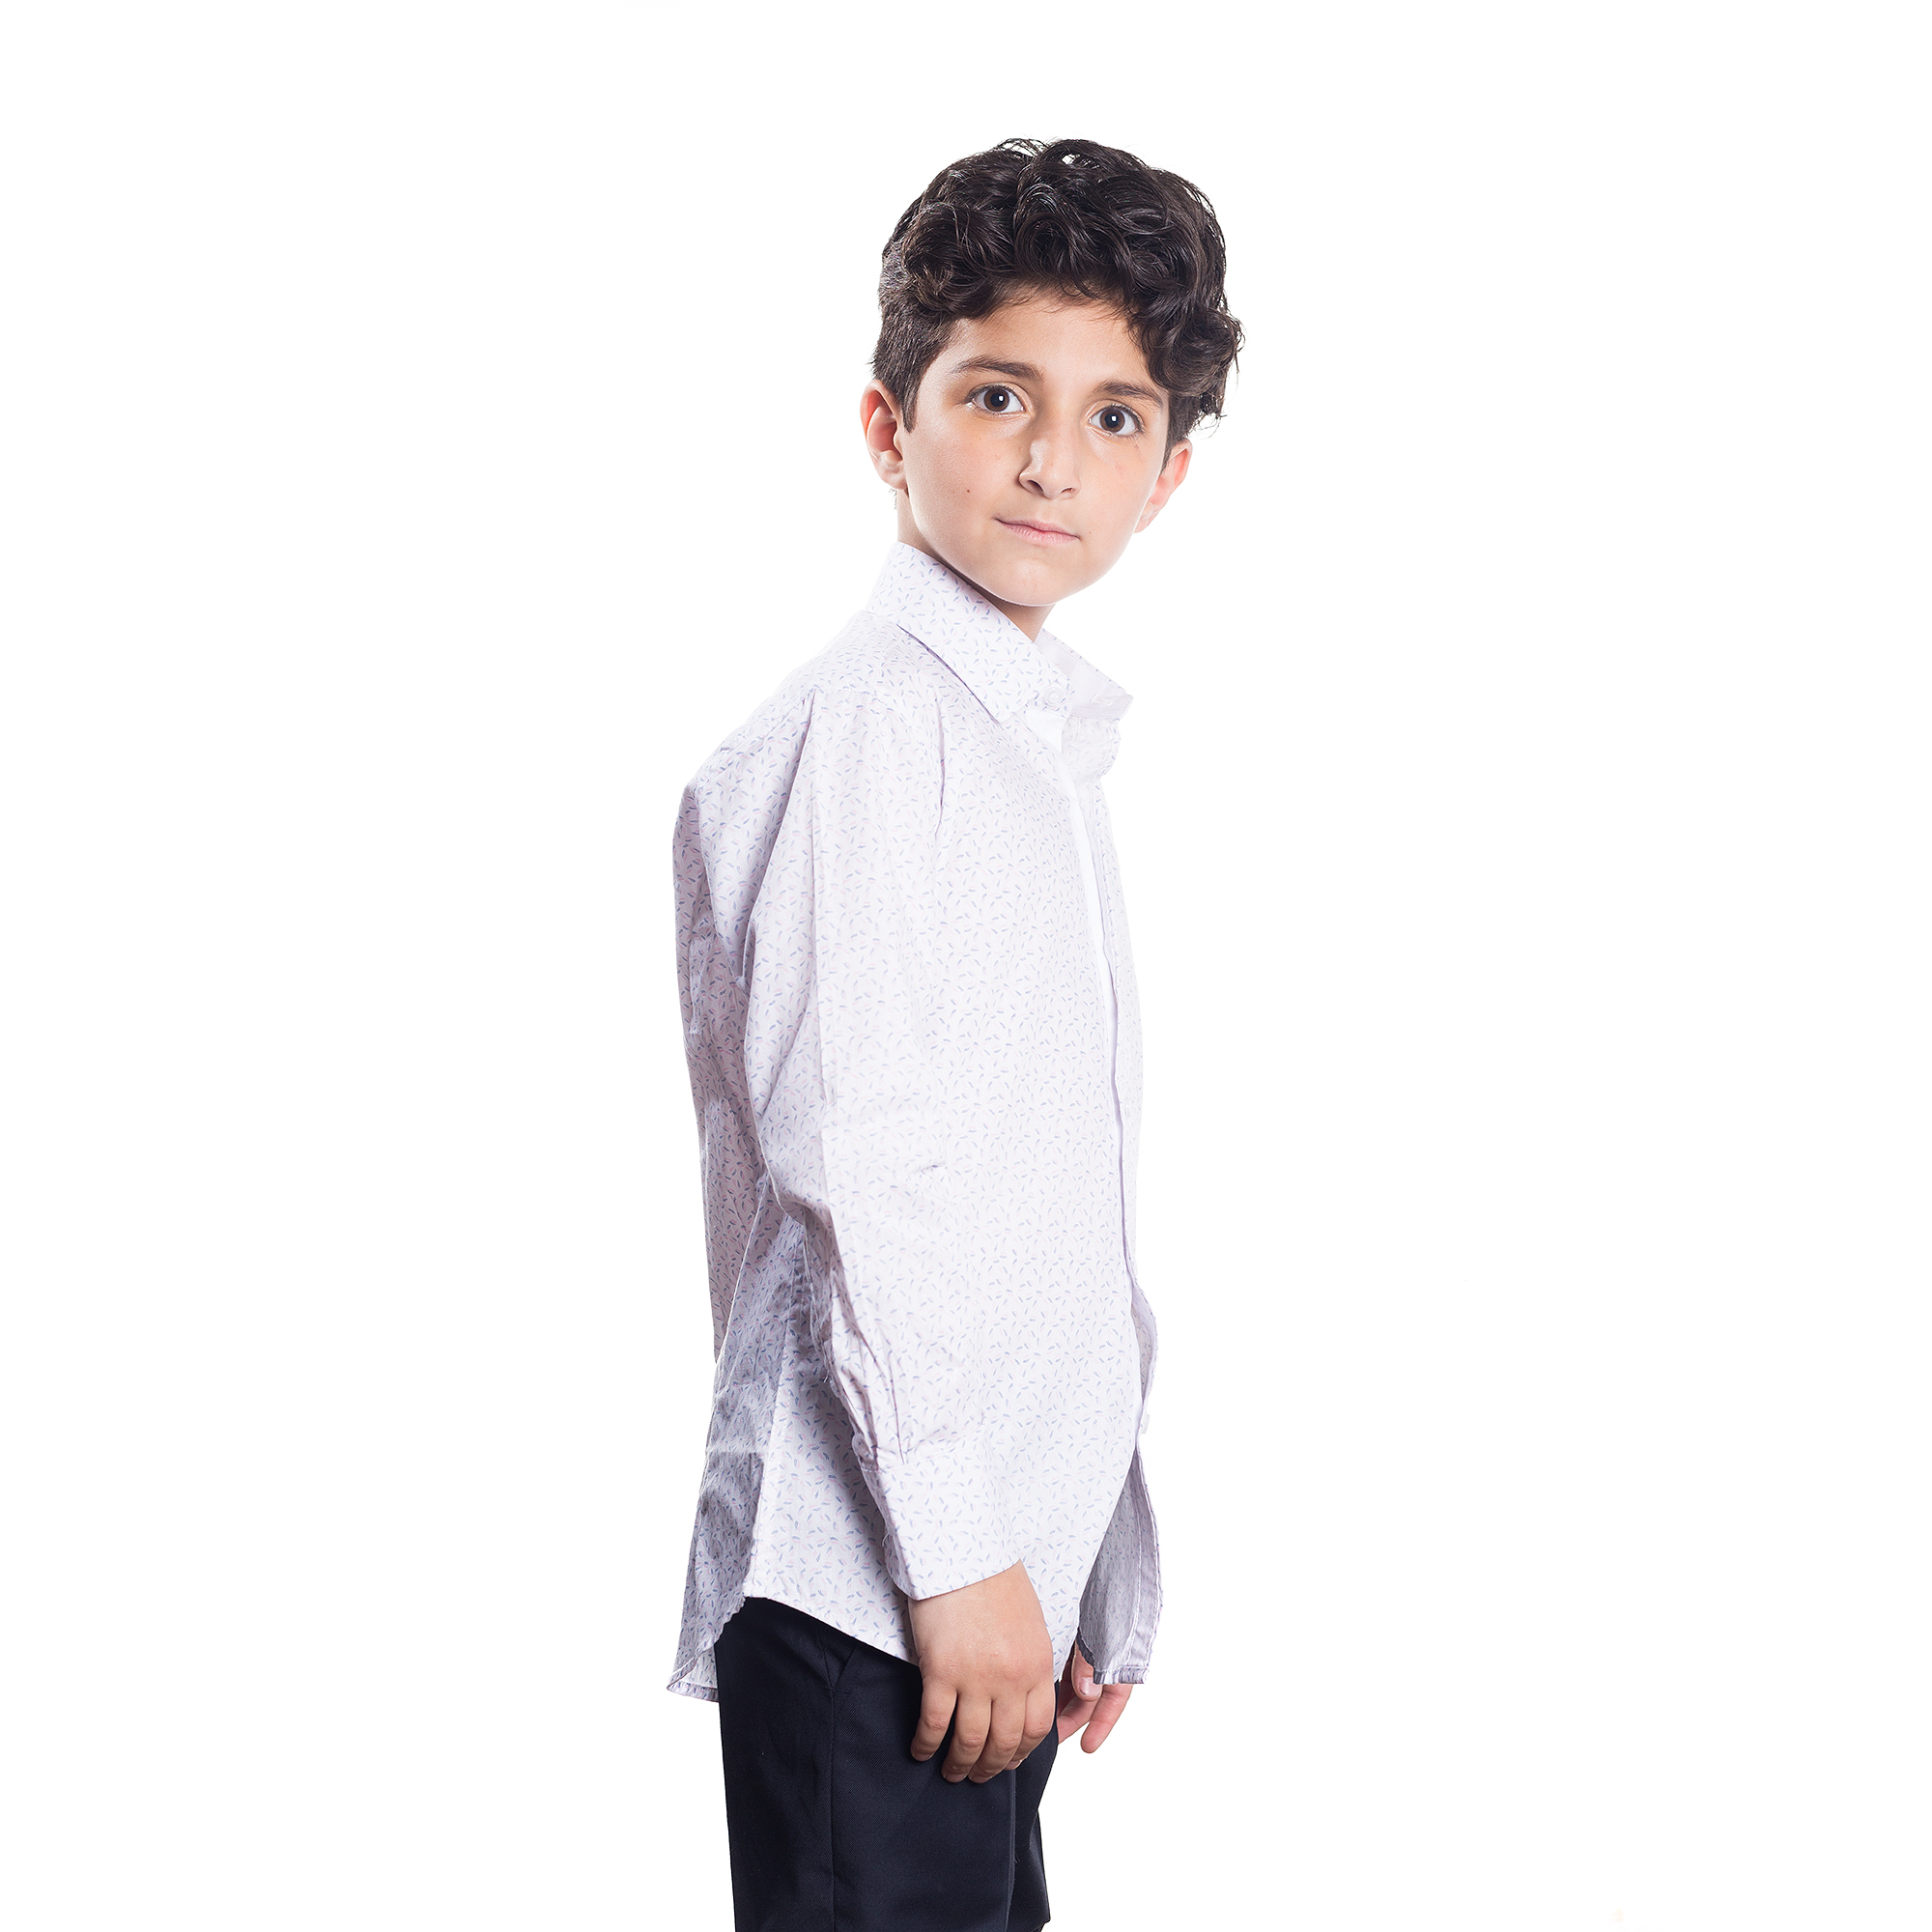 Feather Print Boys Shirts / Button Down EBSH144B